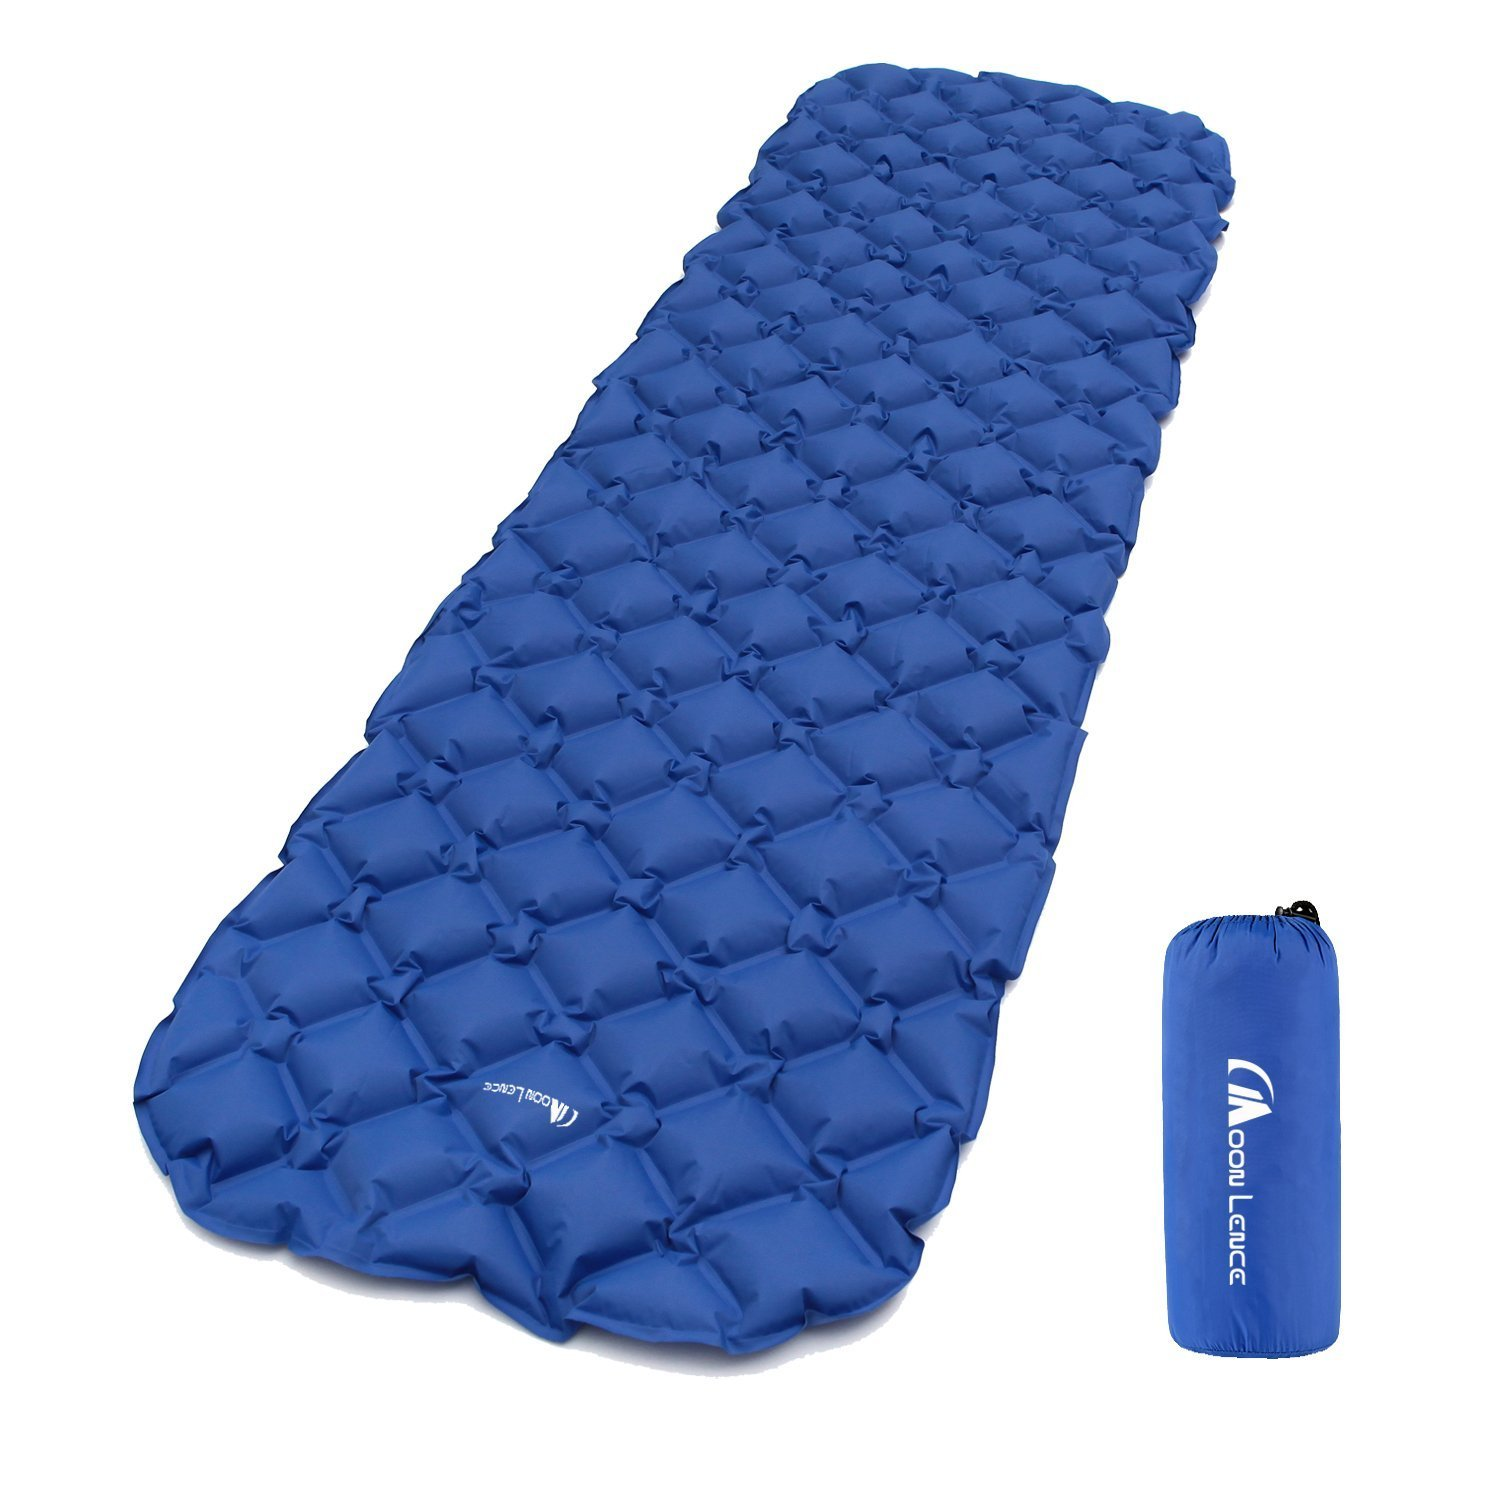 wwww Camping air cushion-Blue